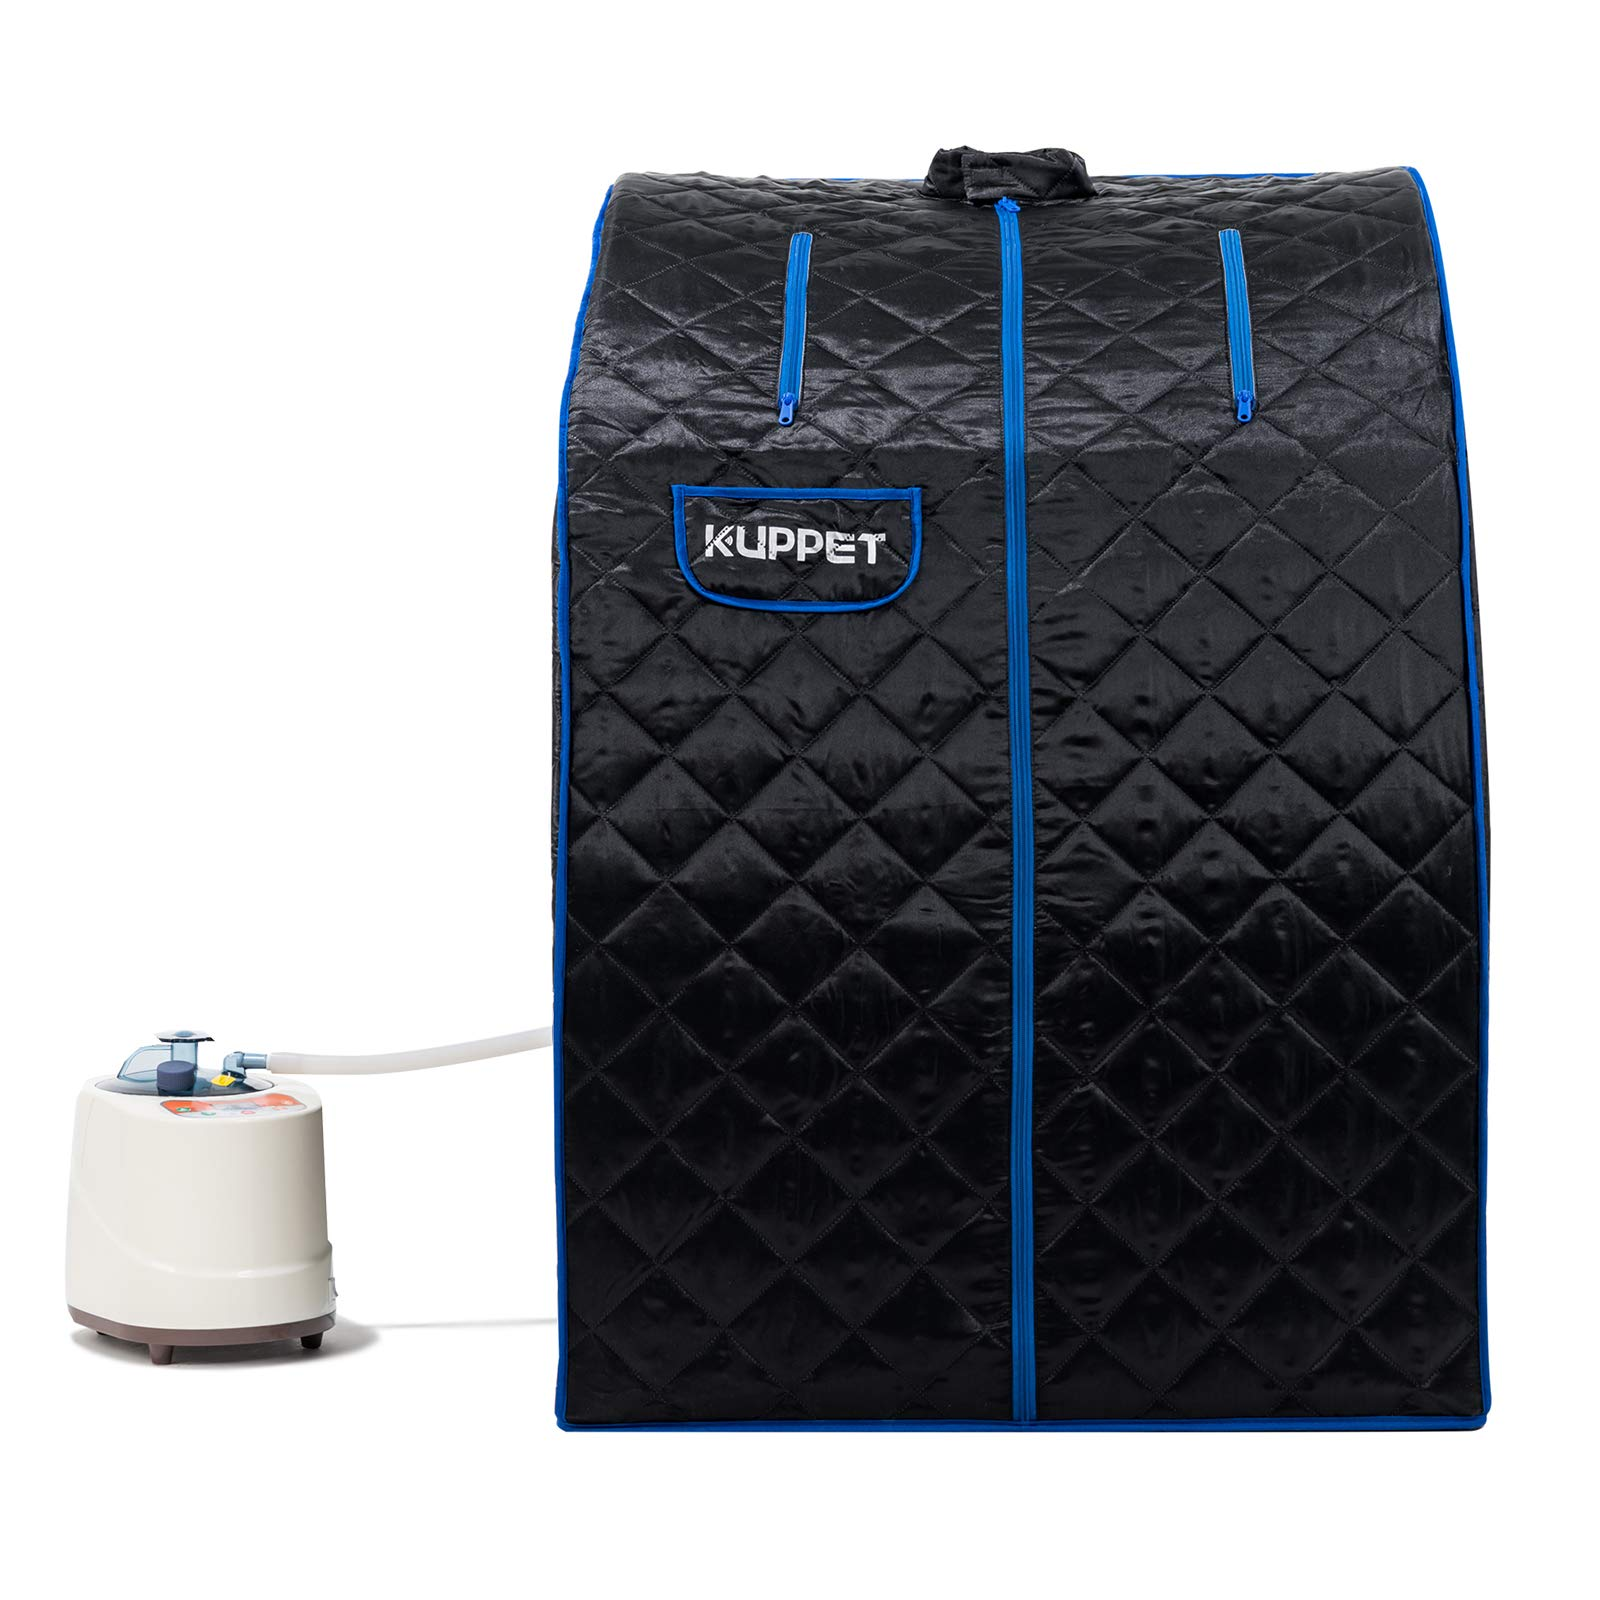 KUPPET Portable Folding Steam Sauna-2L One Person Home Sauna Spa for Full Body Slimming Loss Weight w/Chair, Remote Control, Steam Pot, Foot Rest, Mat (Black) by KUPPET